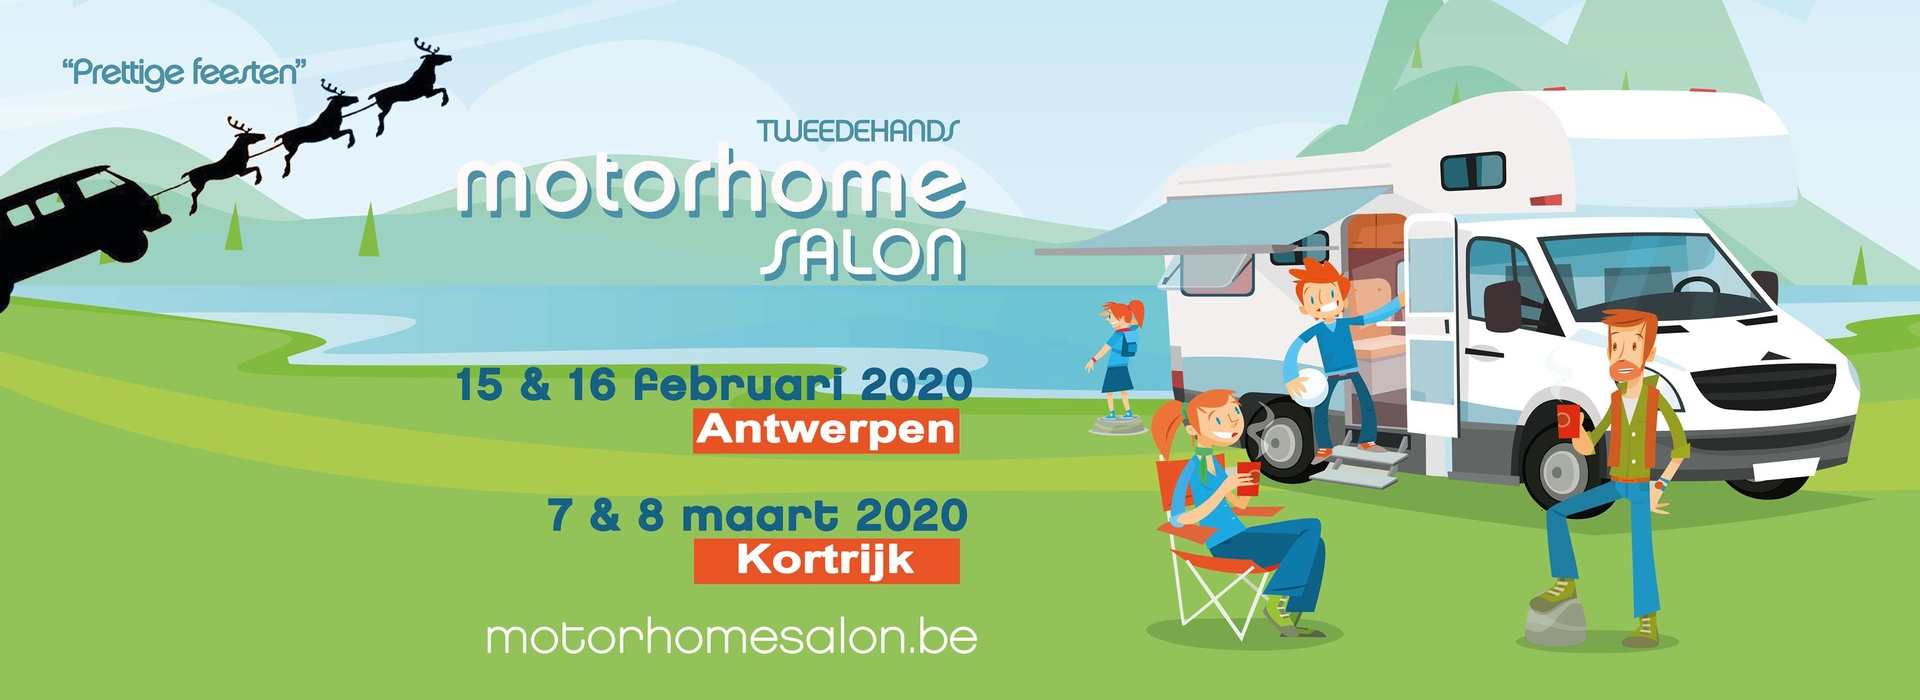 MotorHome Salon in Antwerpen 2020